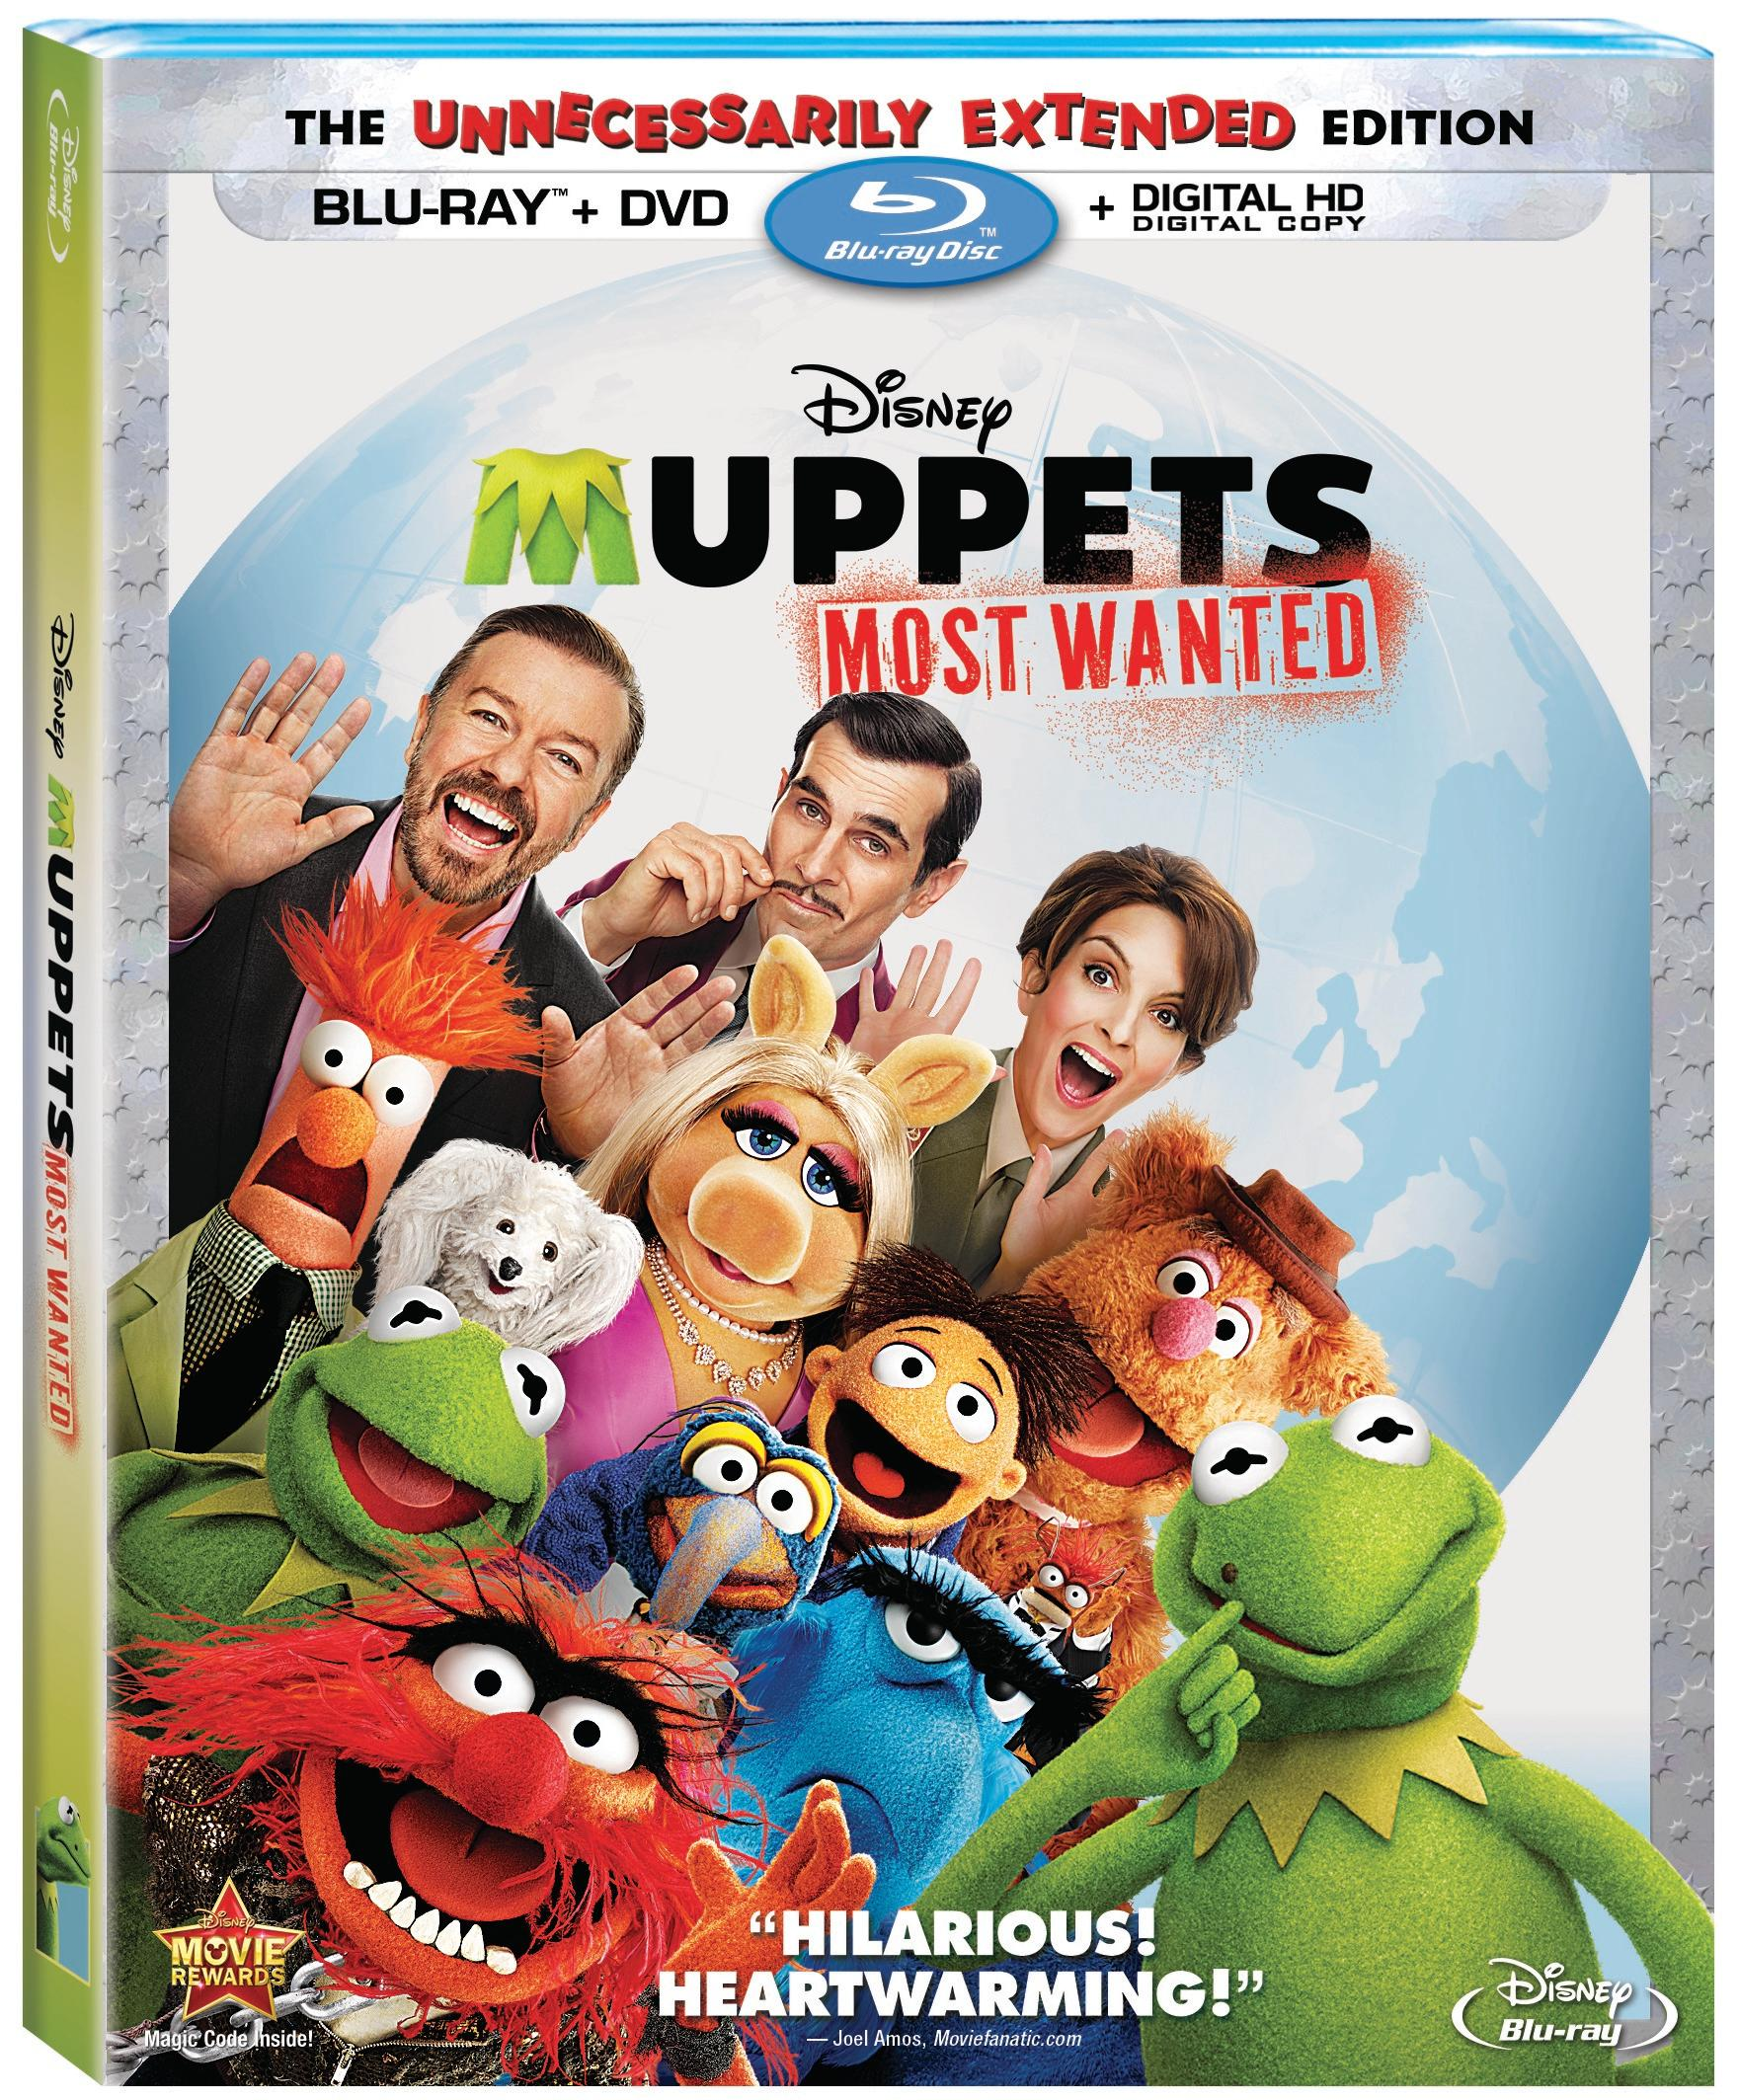 MuppetsMostWantedBlurayCombo Muppets Most Wanted Celebrates its Home Release with Tons of Clips